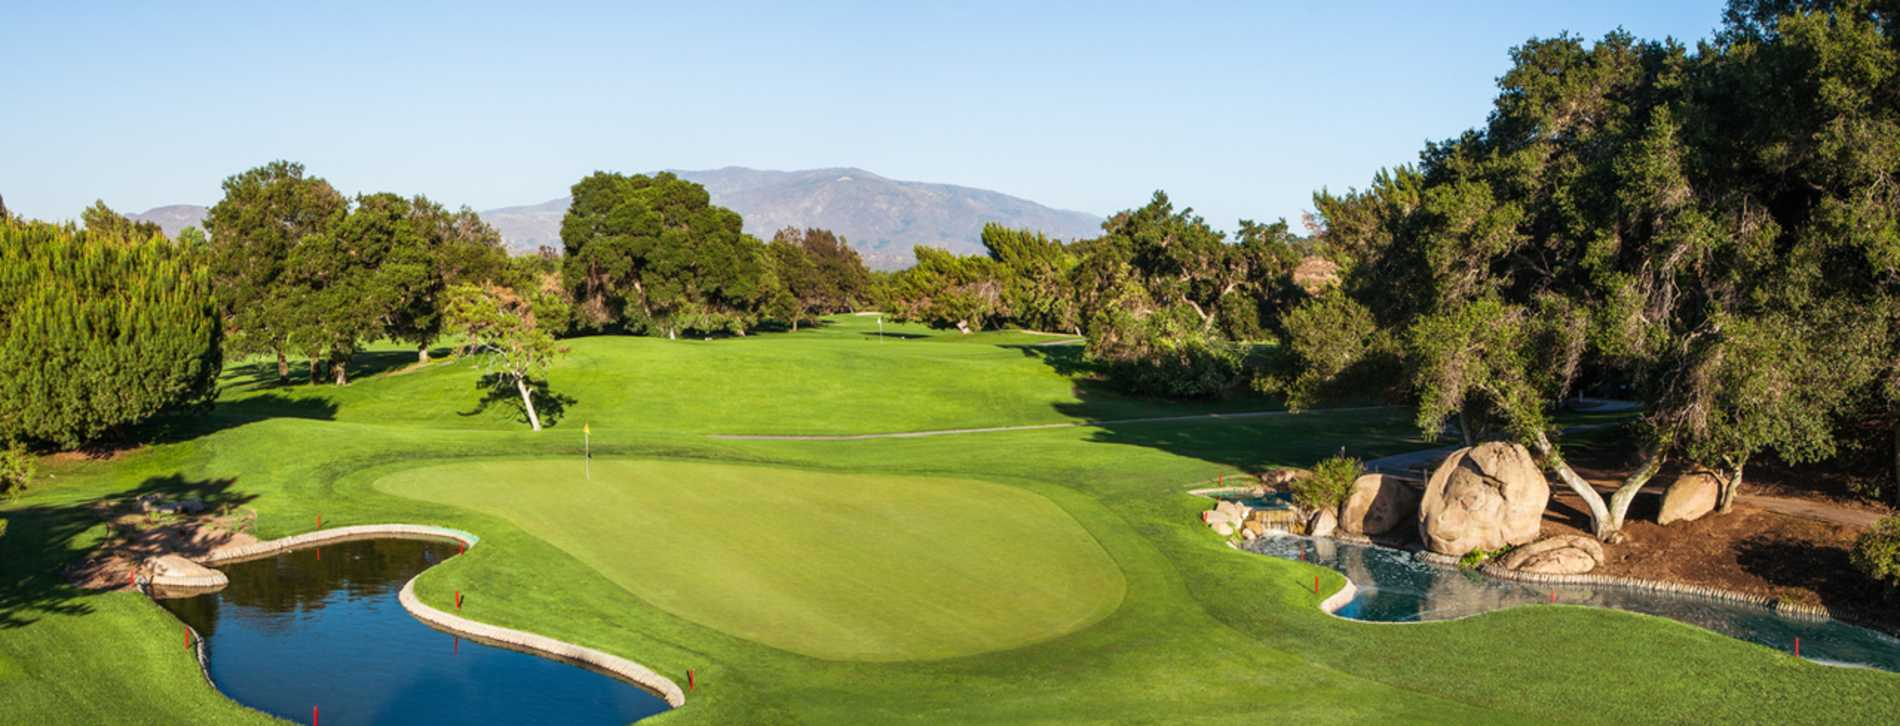 Golf Course - Temecula Creek Inn